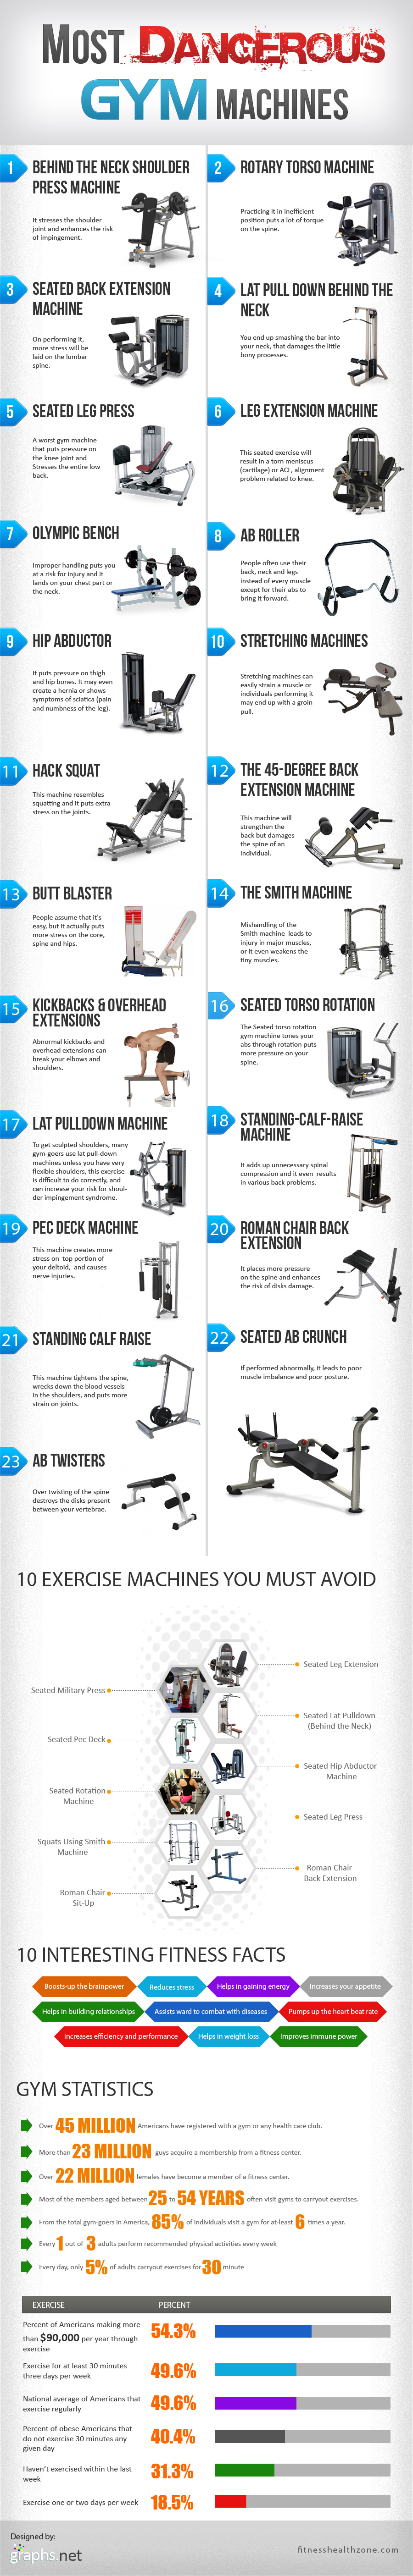 gym machines